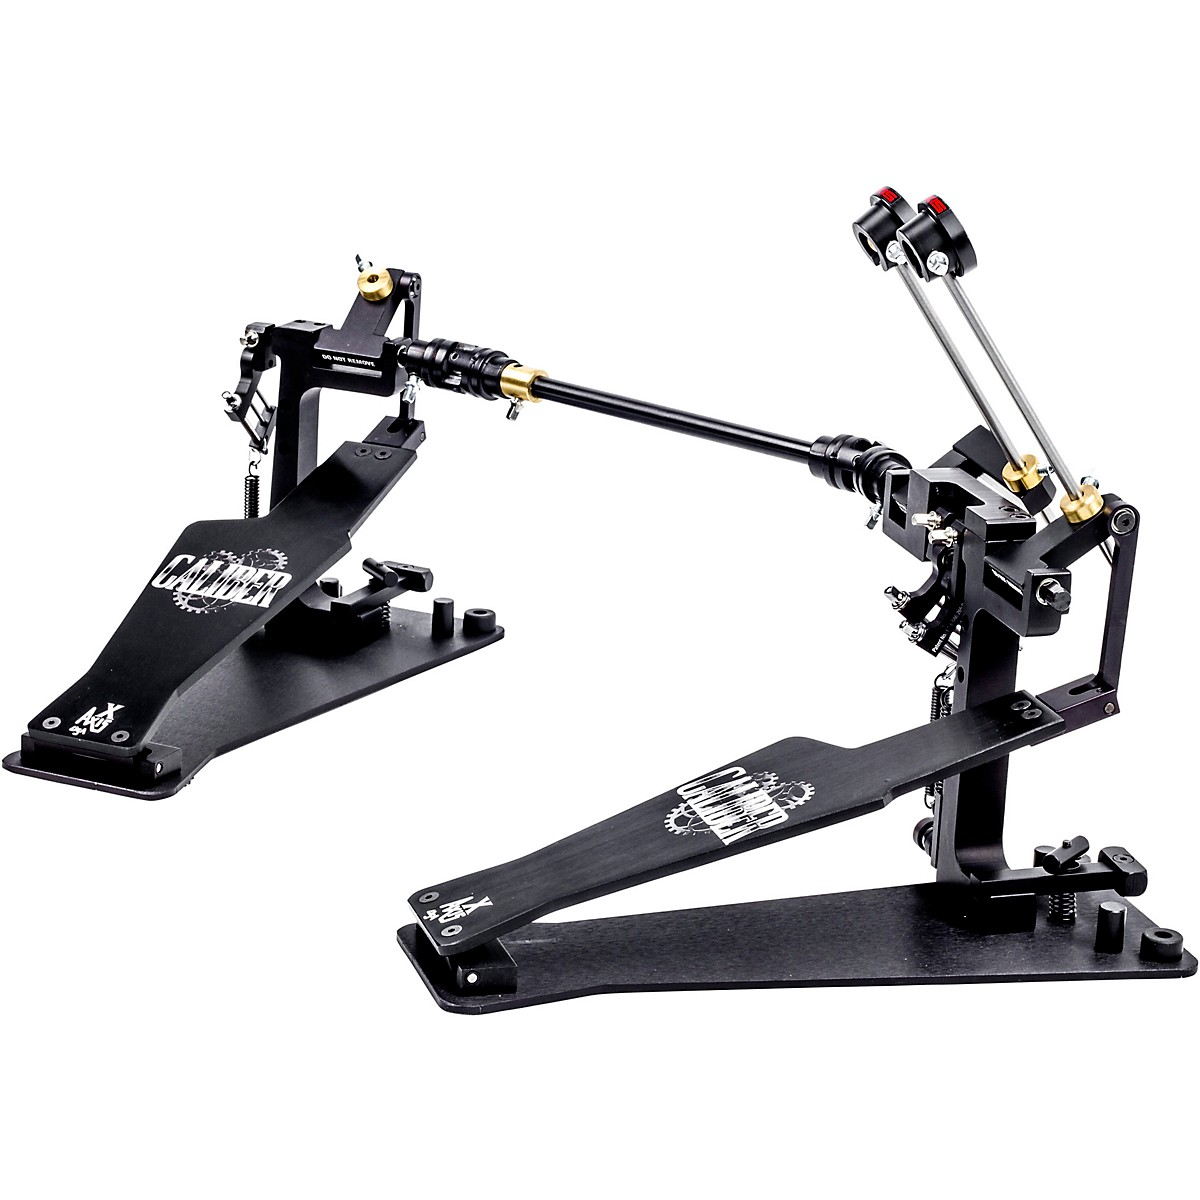 Axis Caliber X Double Bass Drum Pedal